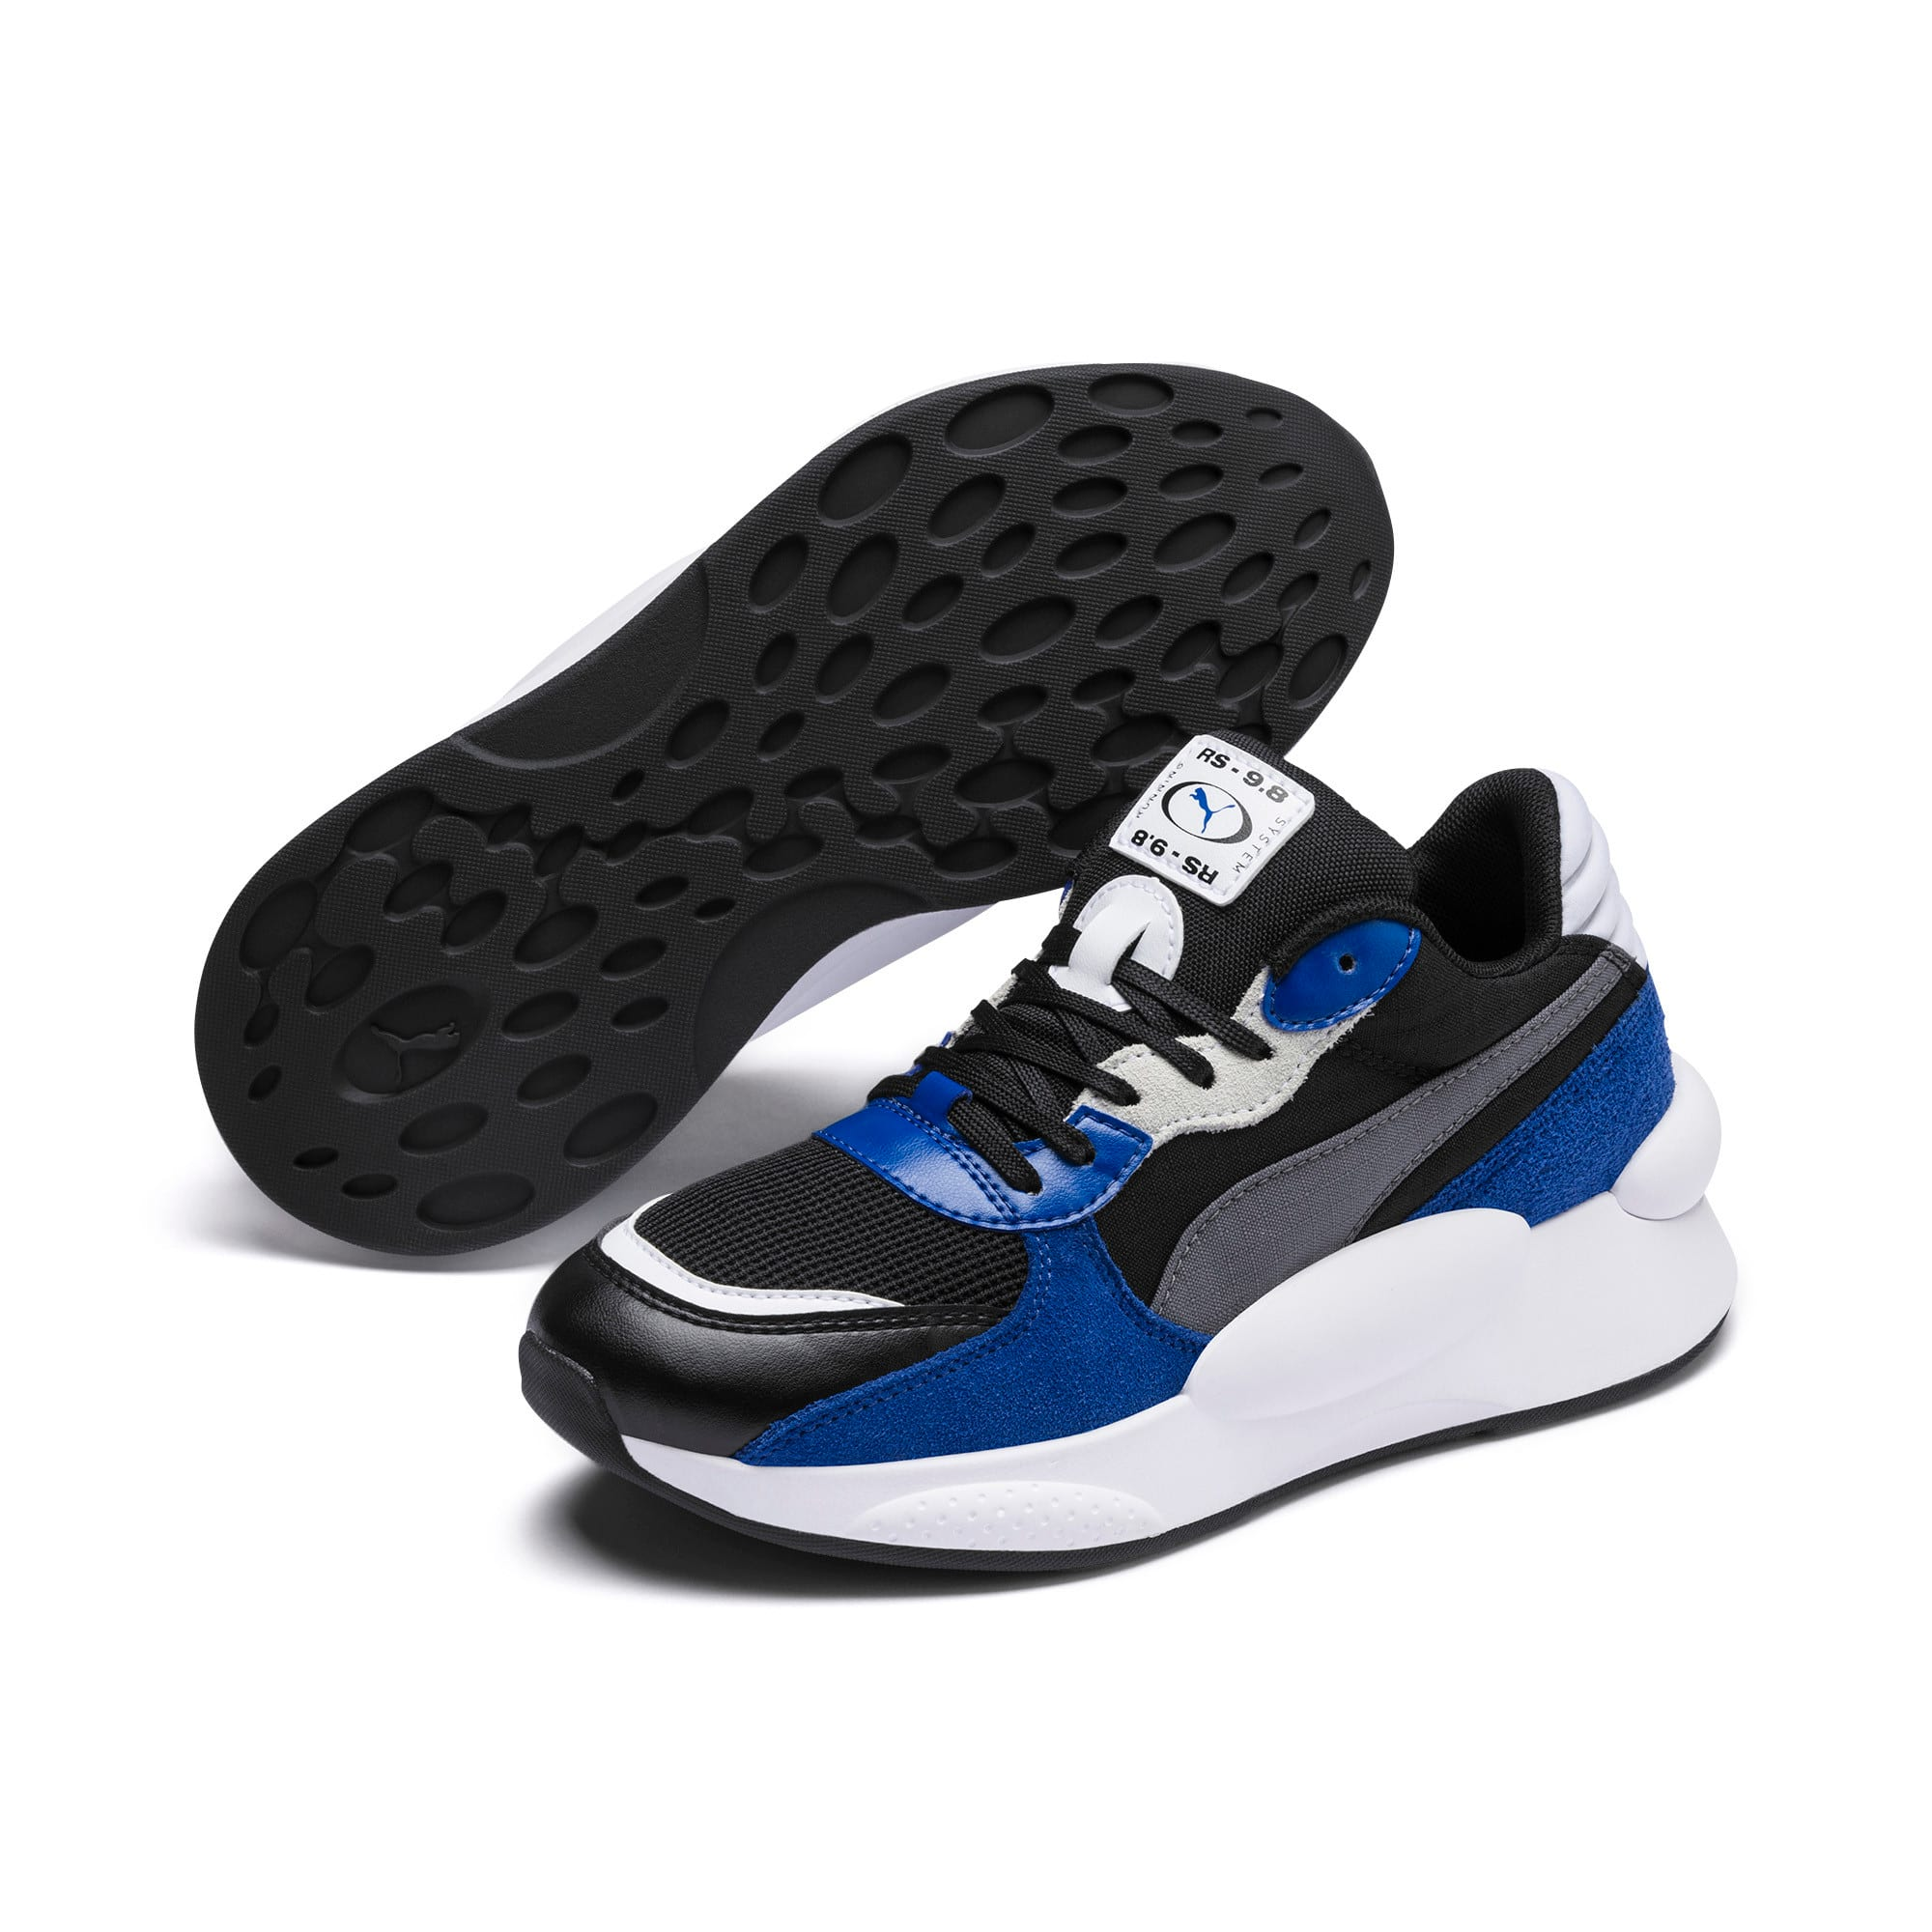 Thumbnail 2 of RS 9.8 Space Youth Trainers, Puma Black-Galaxy Blue, medium